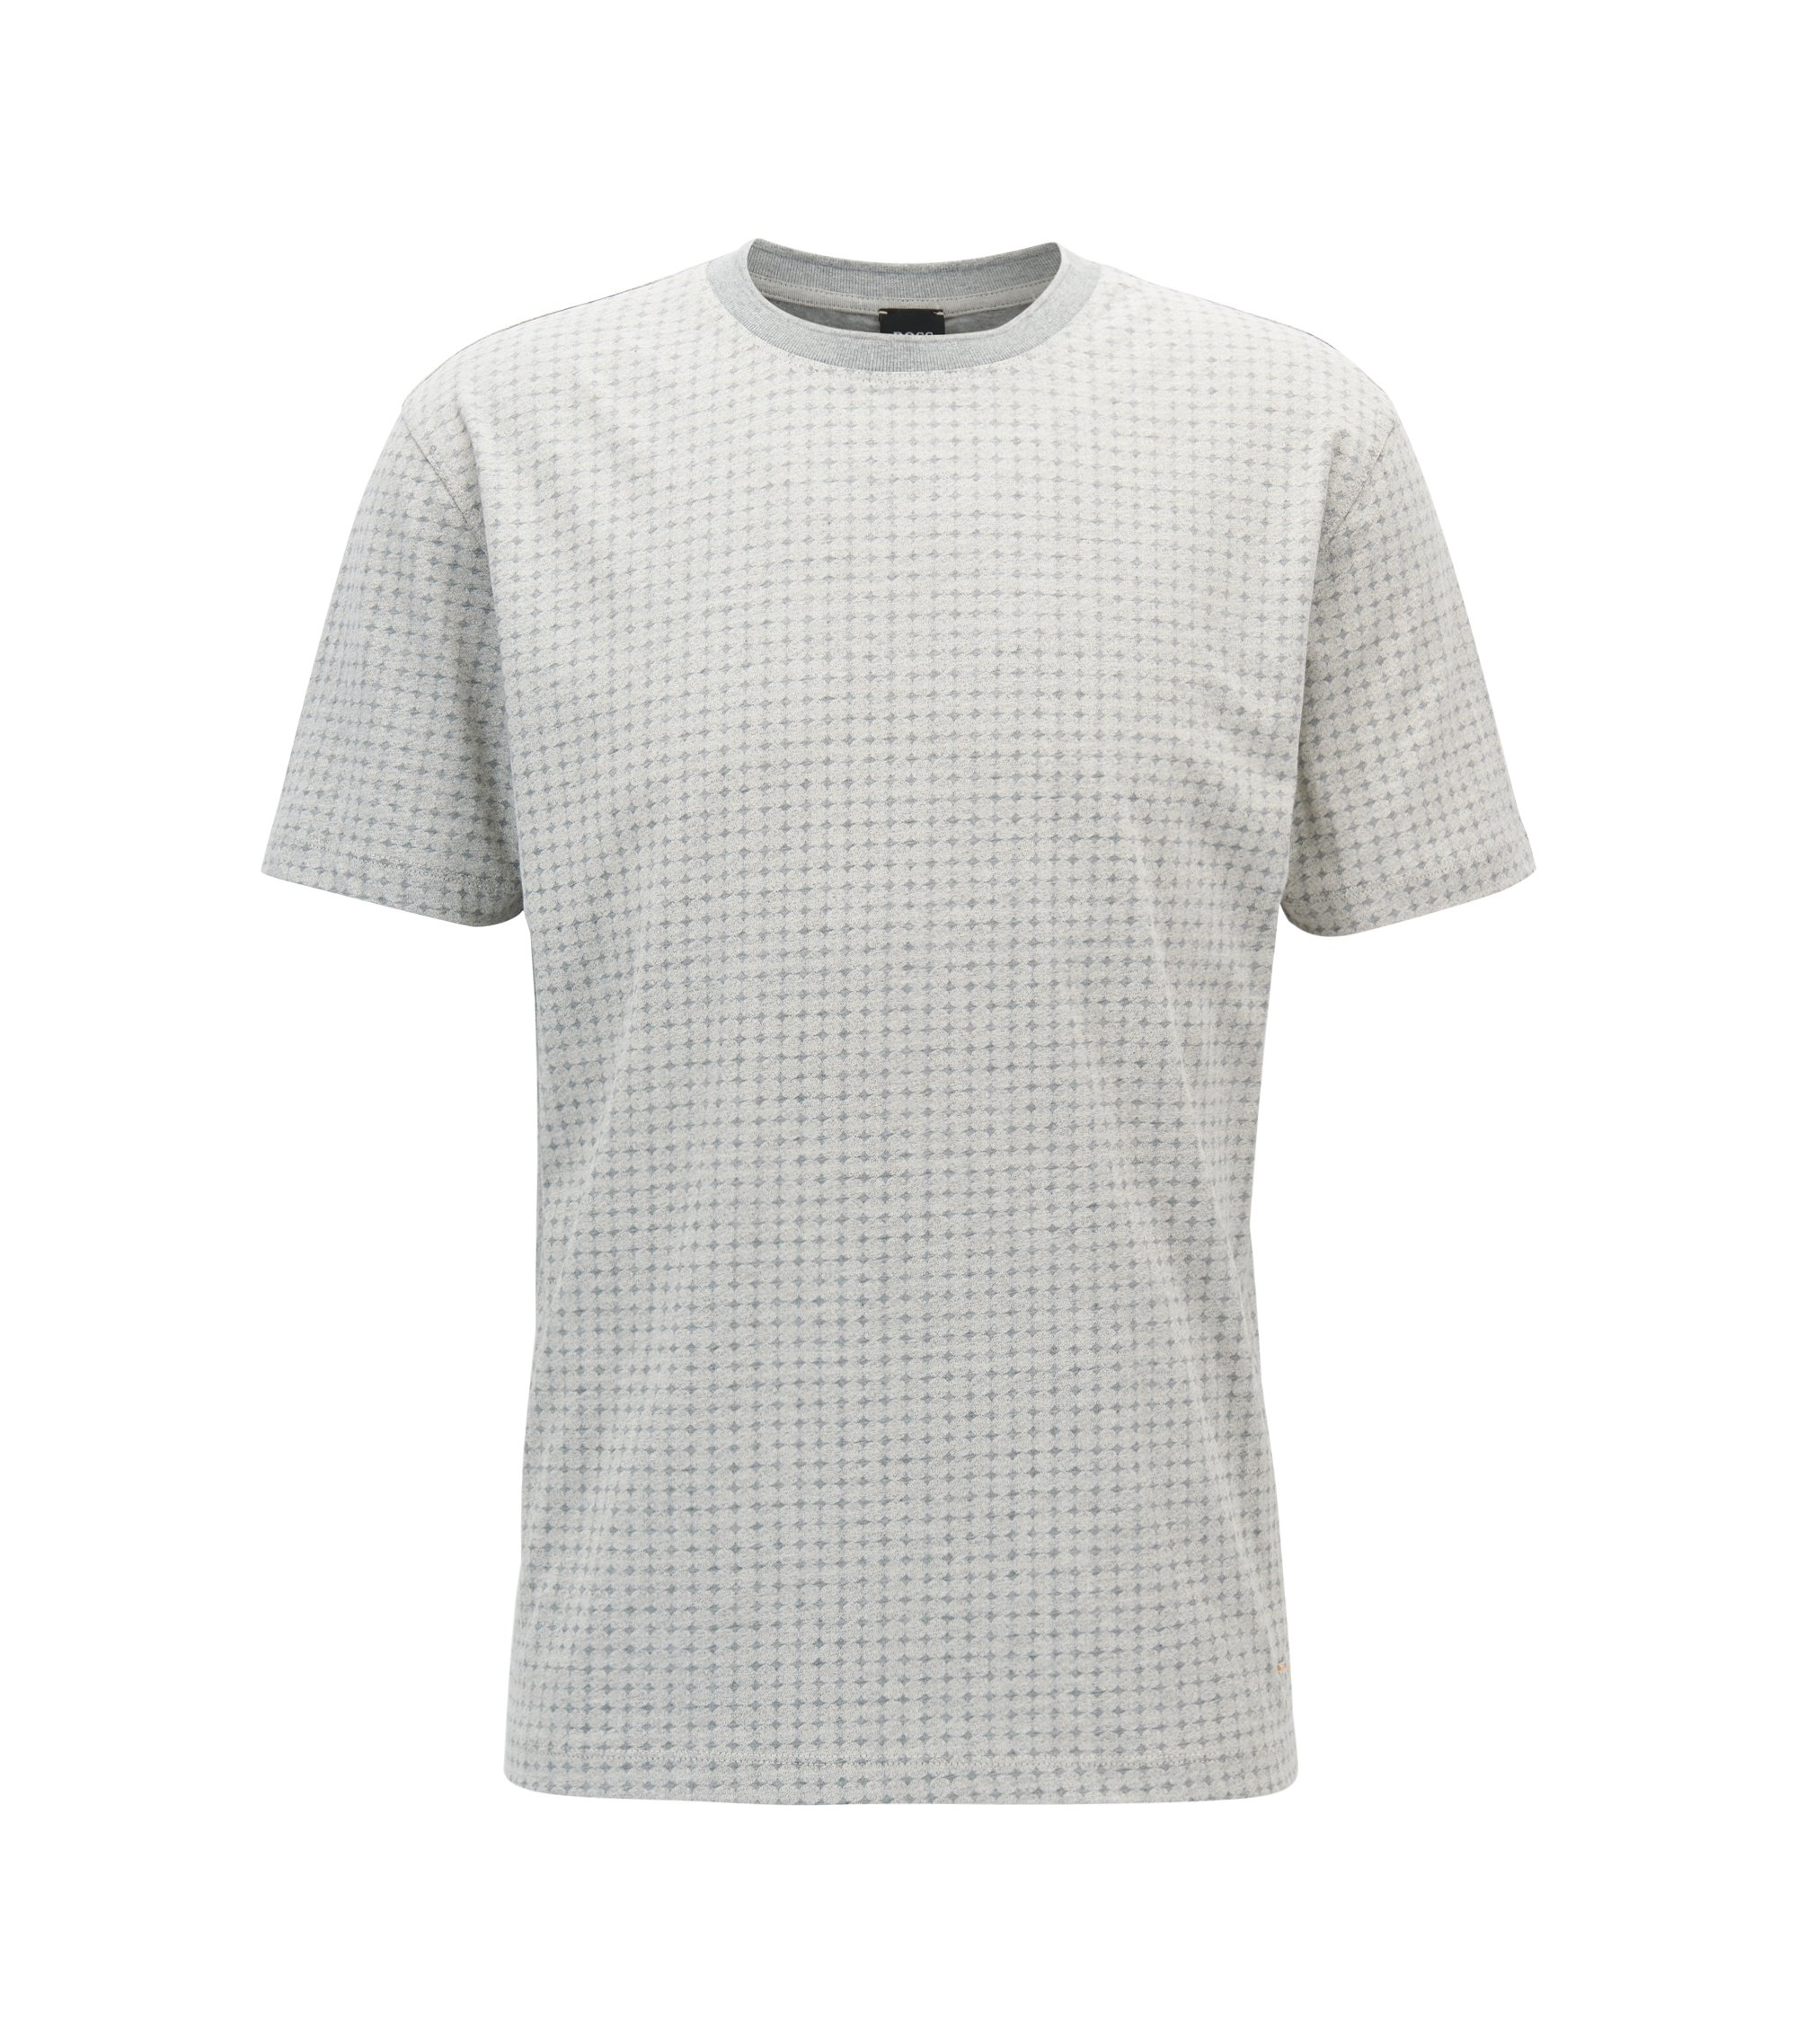 Relaxed fit T-shirt in patterned cotton jersey, Light Grey